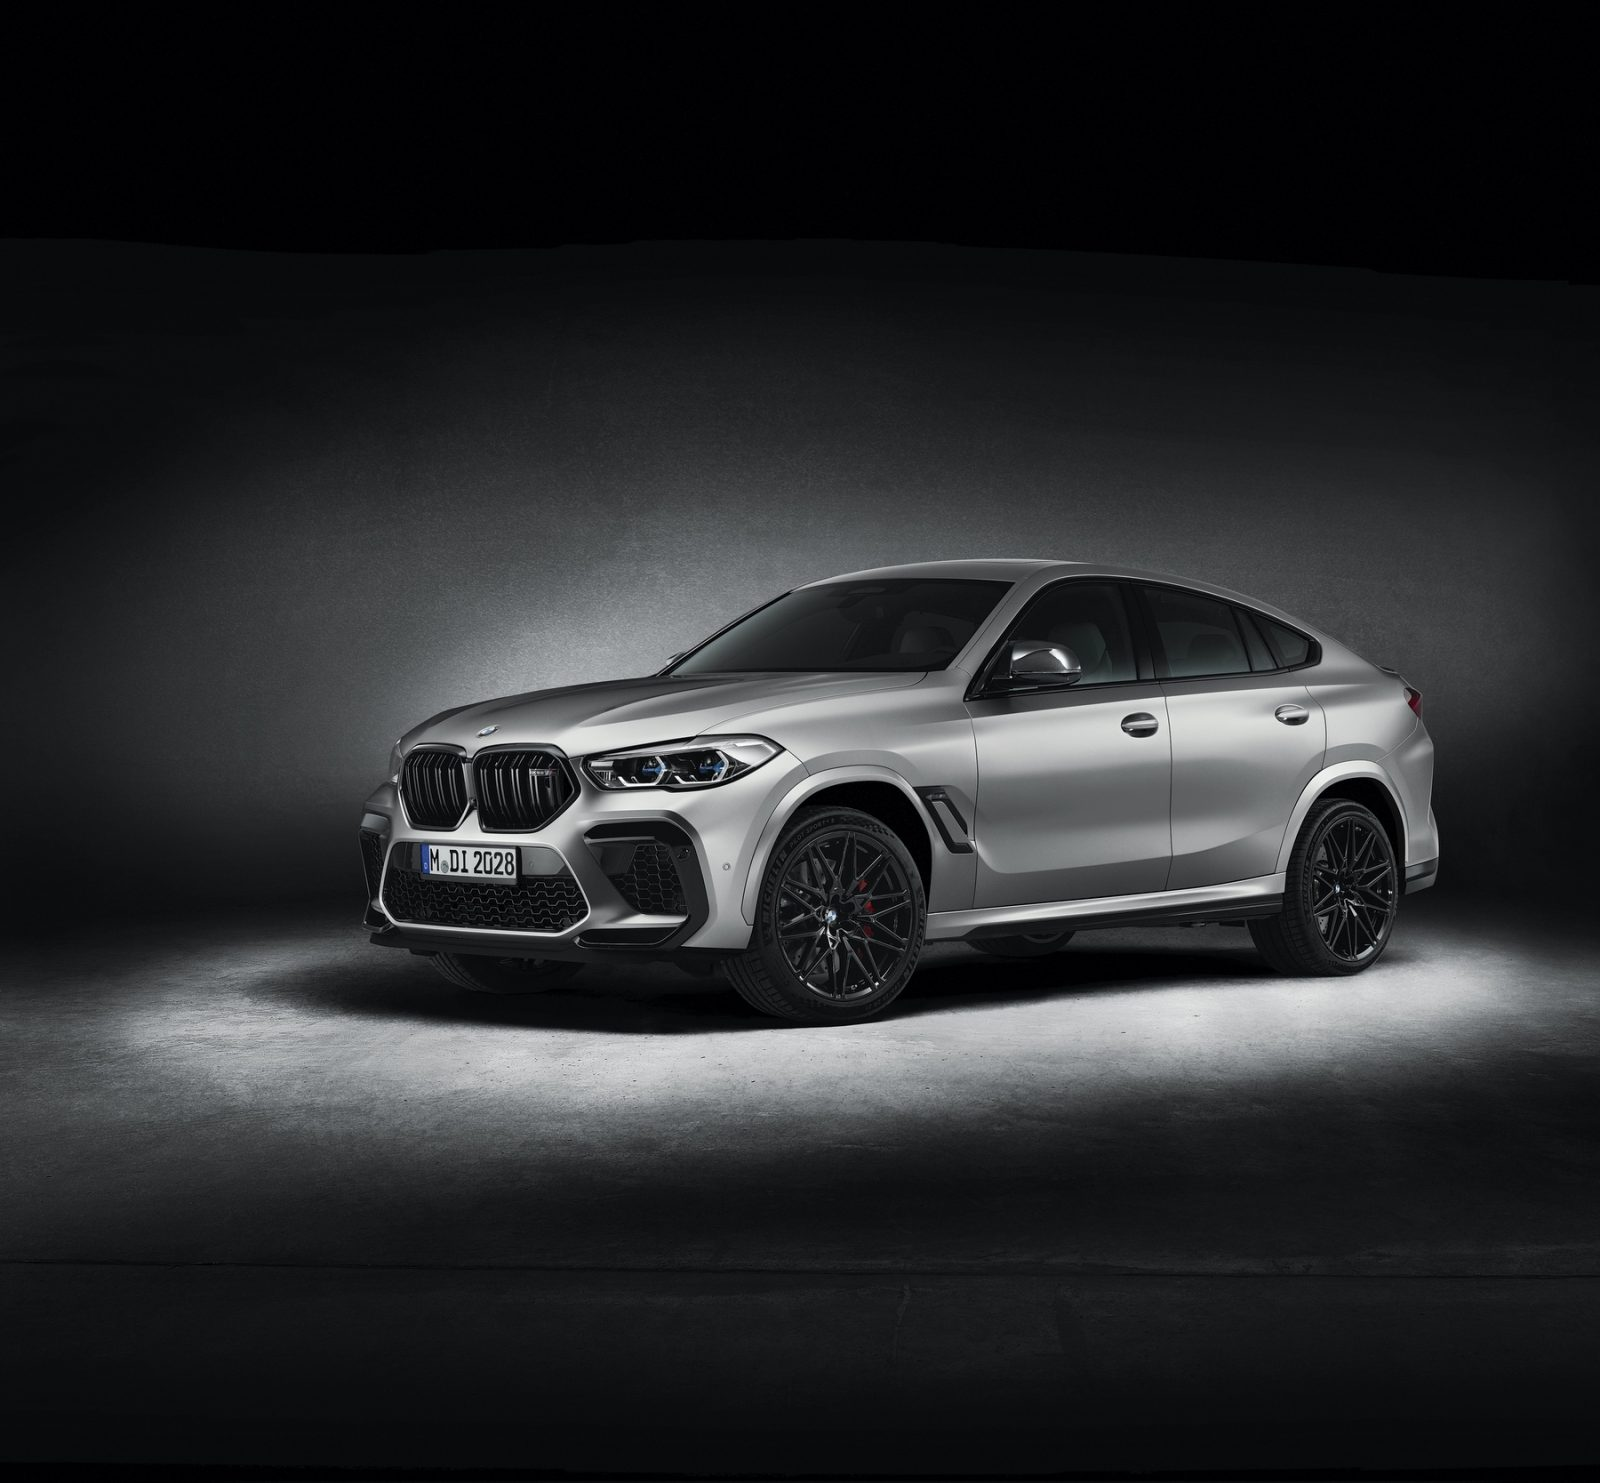 X6M First Edition Model